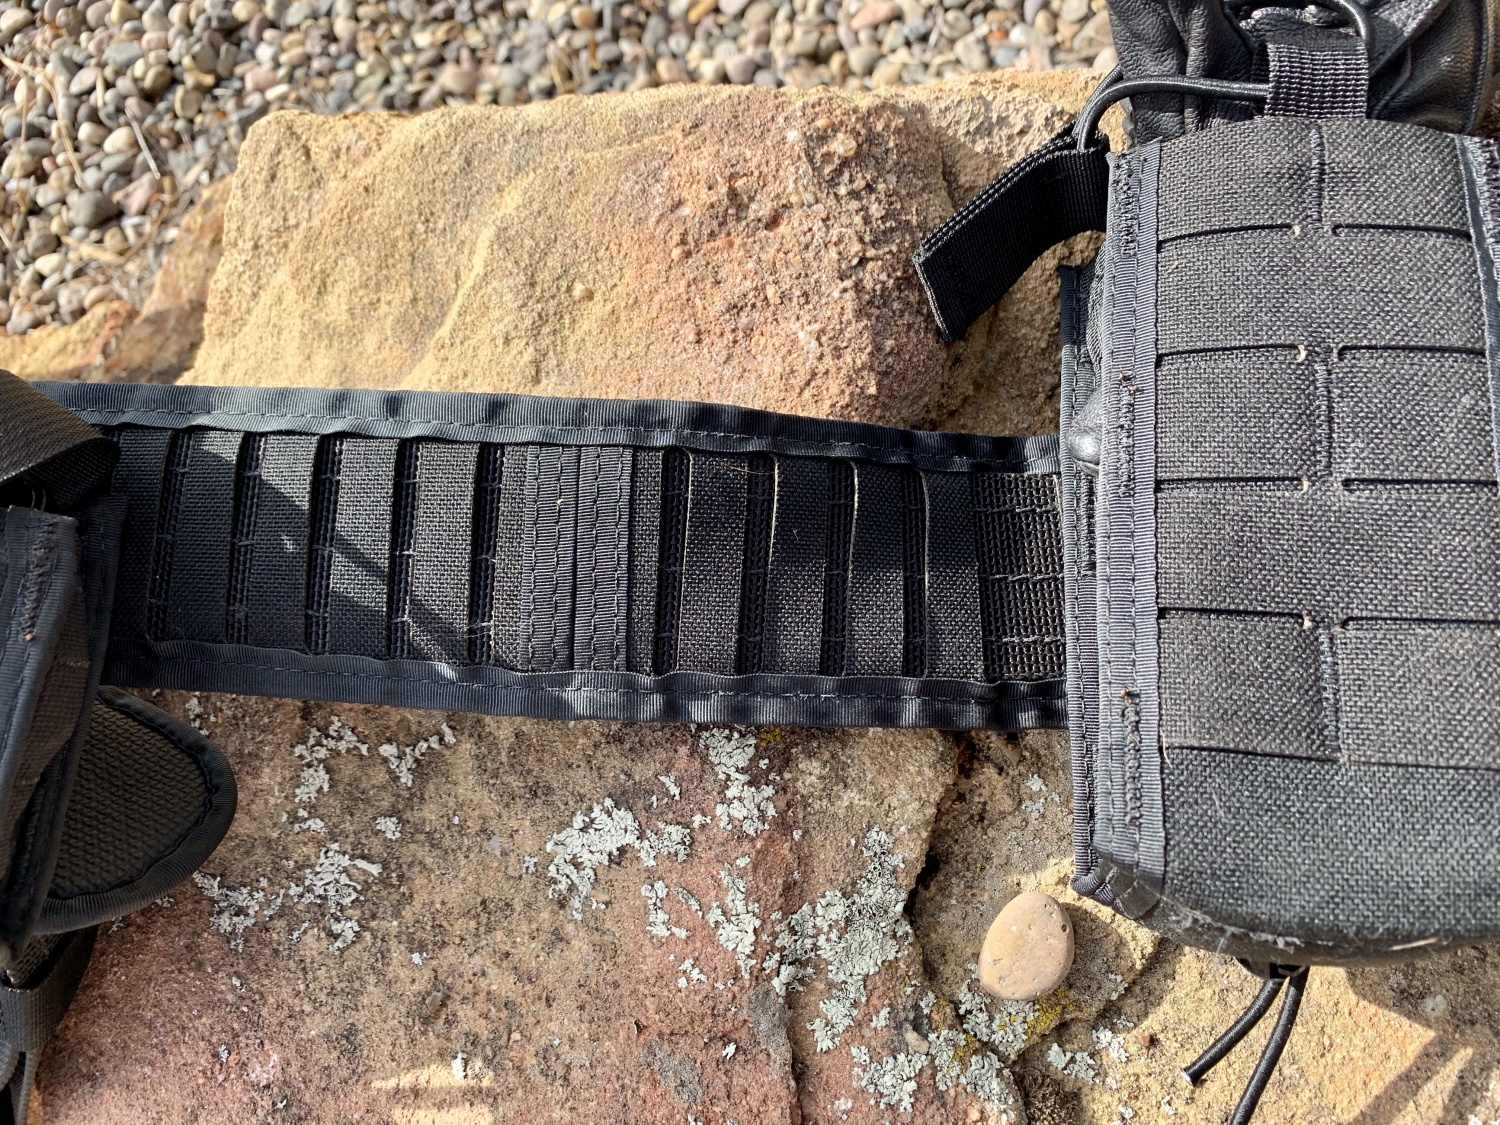 The strips on the Padded Duty Belt allow you to precisely place your gear and keep it in place. Warning: setup takes some time.